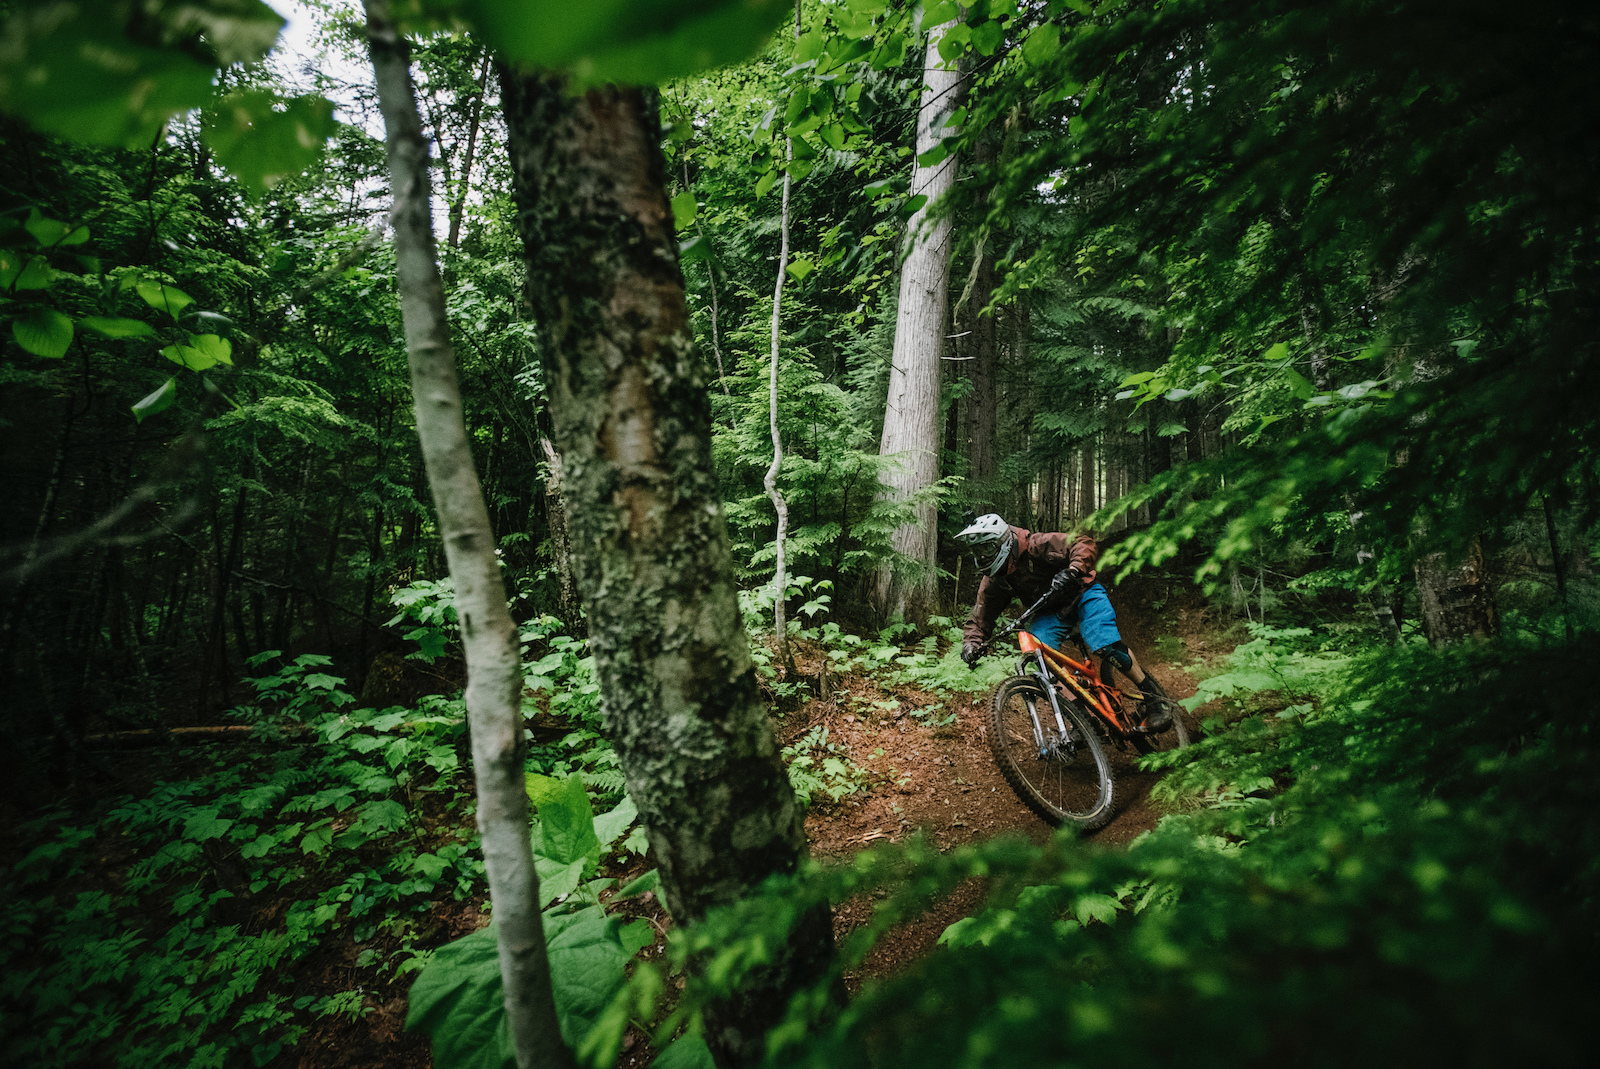 Revelstoke has some beautiful lush forests. Go as fast as you can to take in as many smells as quickly as possible.